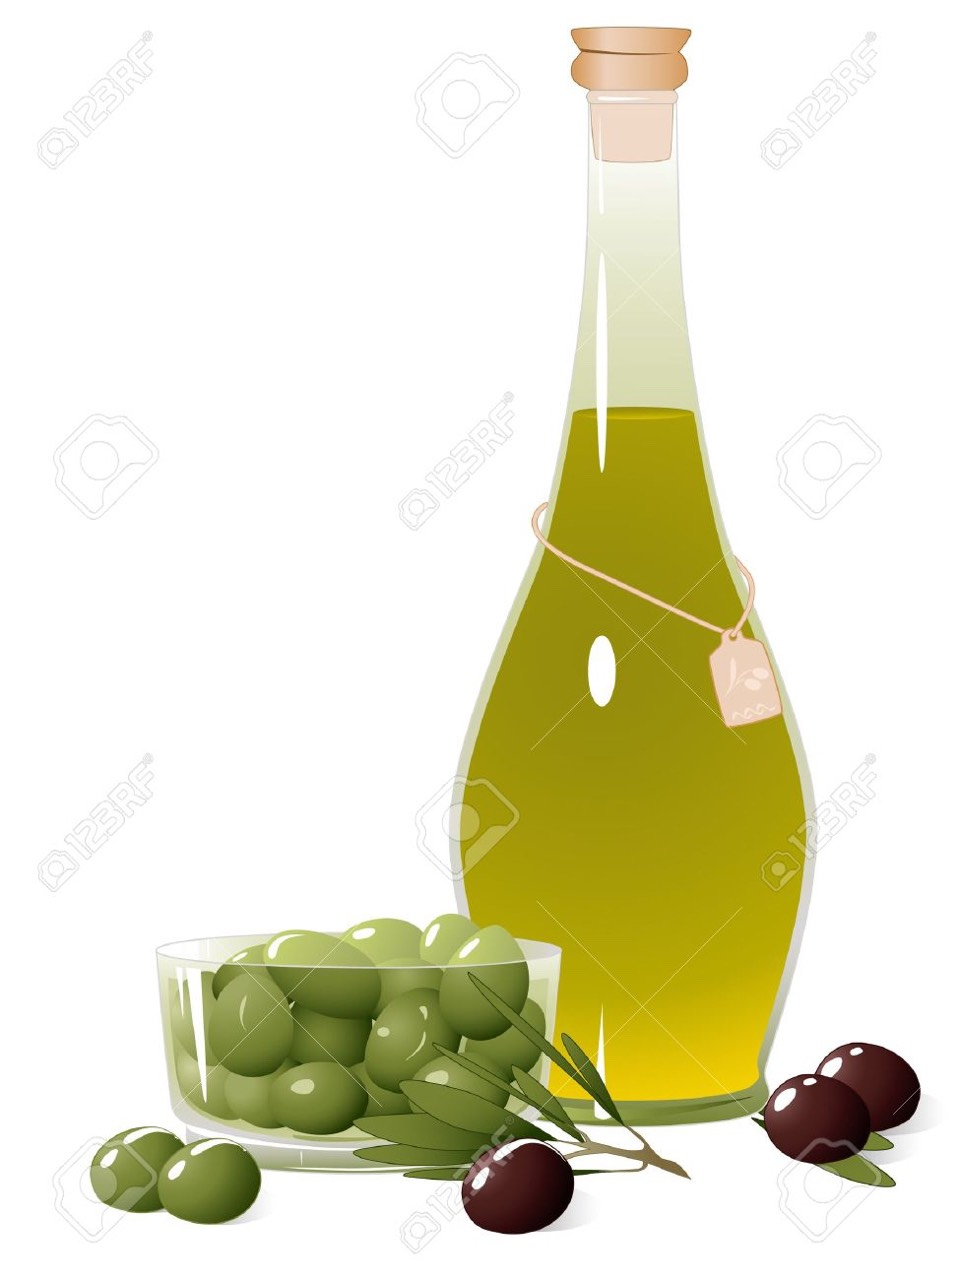 Get oil olive  and message it and Don't wash your hand  and do it every day and months or your choice if you want  do every days or month.